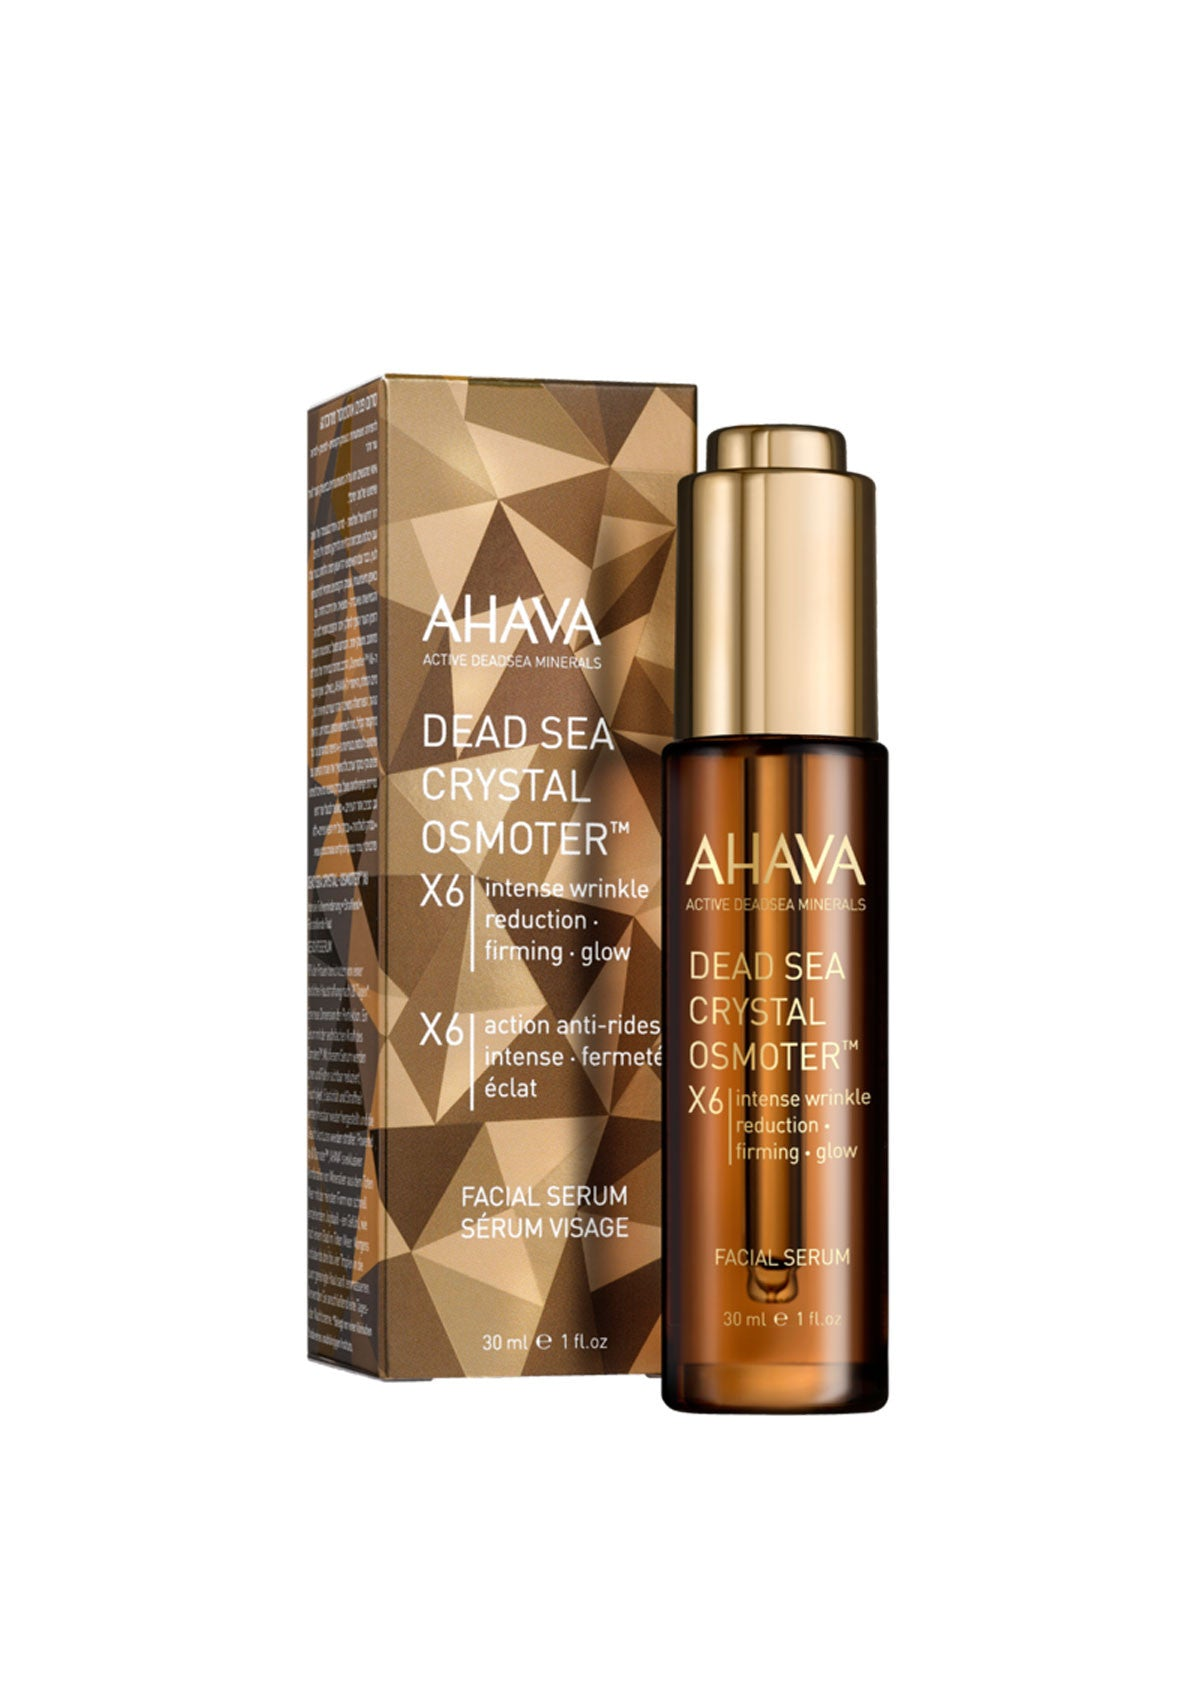 AHAVA - Dead Sea Crystal Osmoter X6 Facial Serum - DeadSeaShop.co.uk